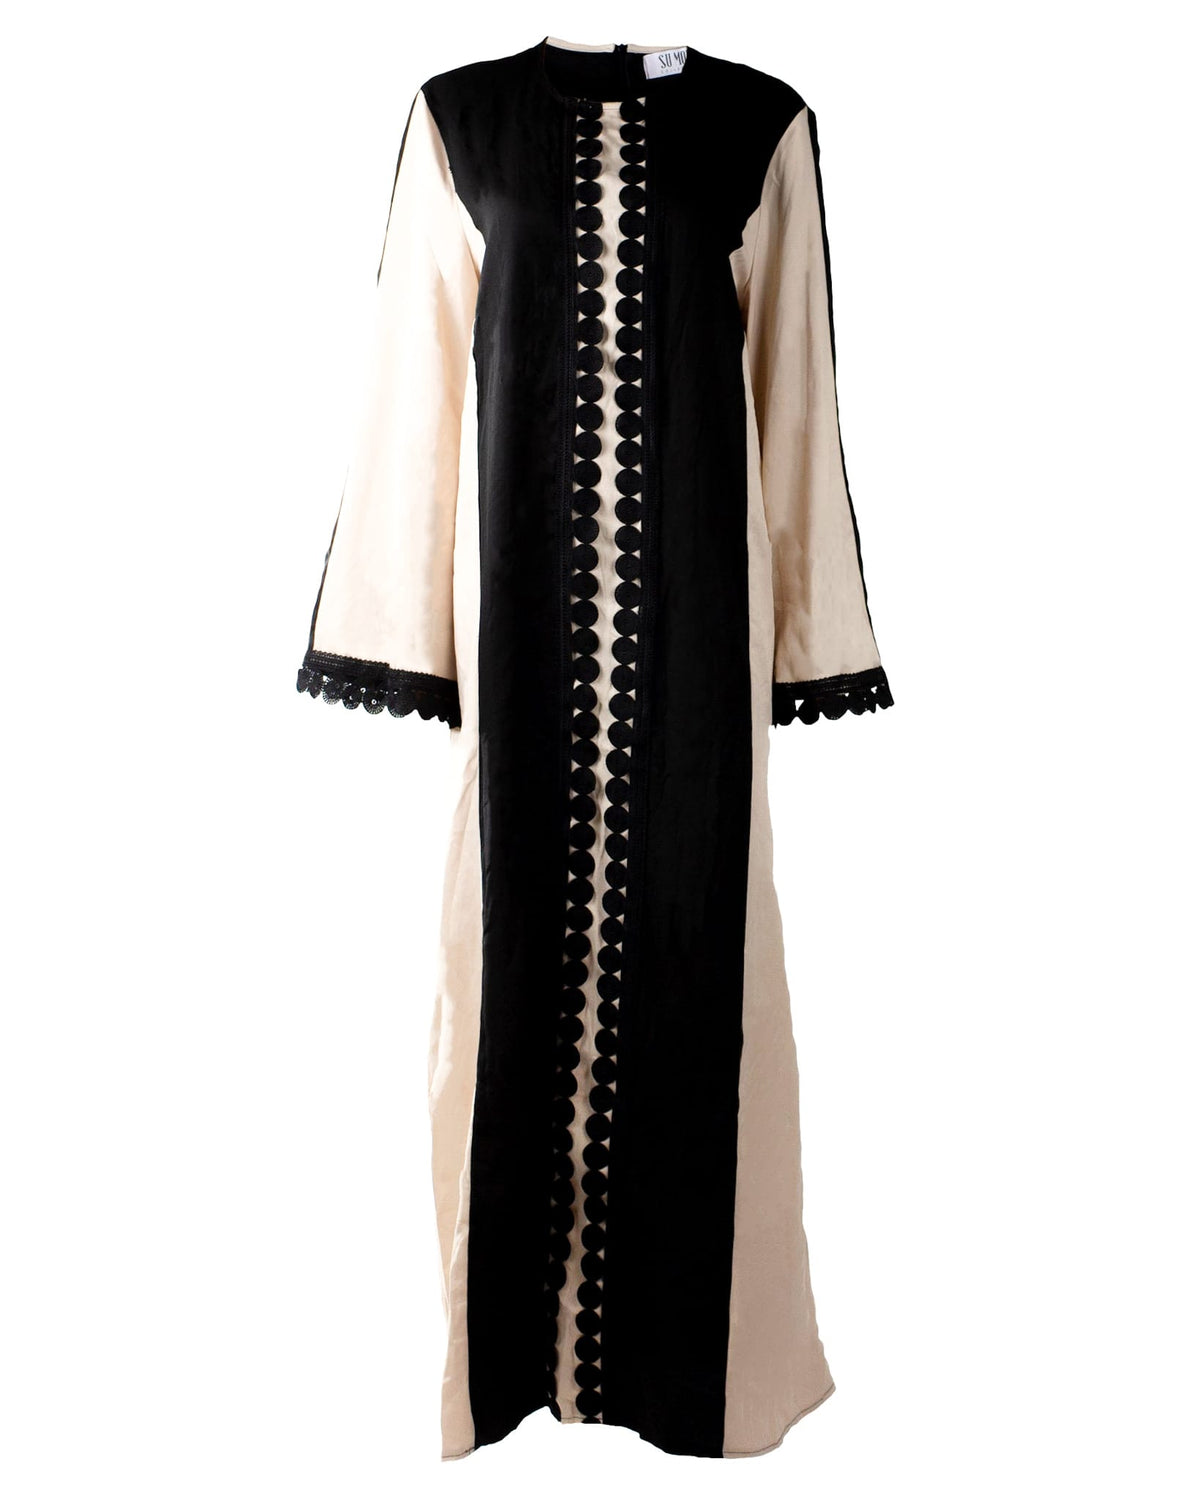 Black-Beige Abaya Dress